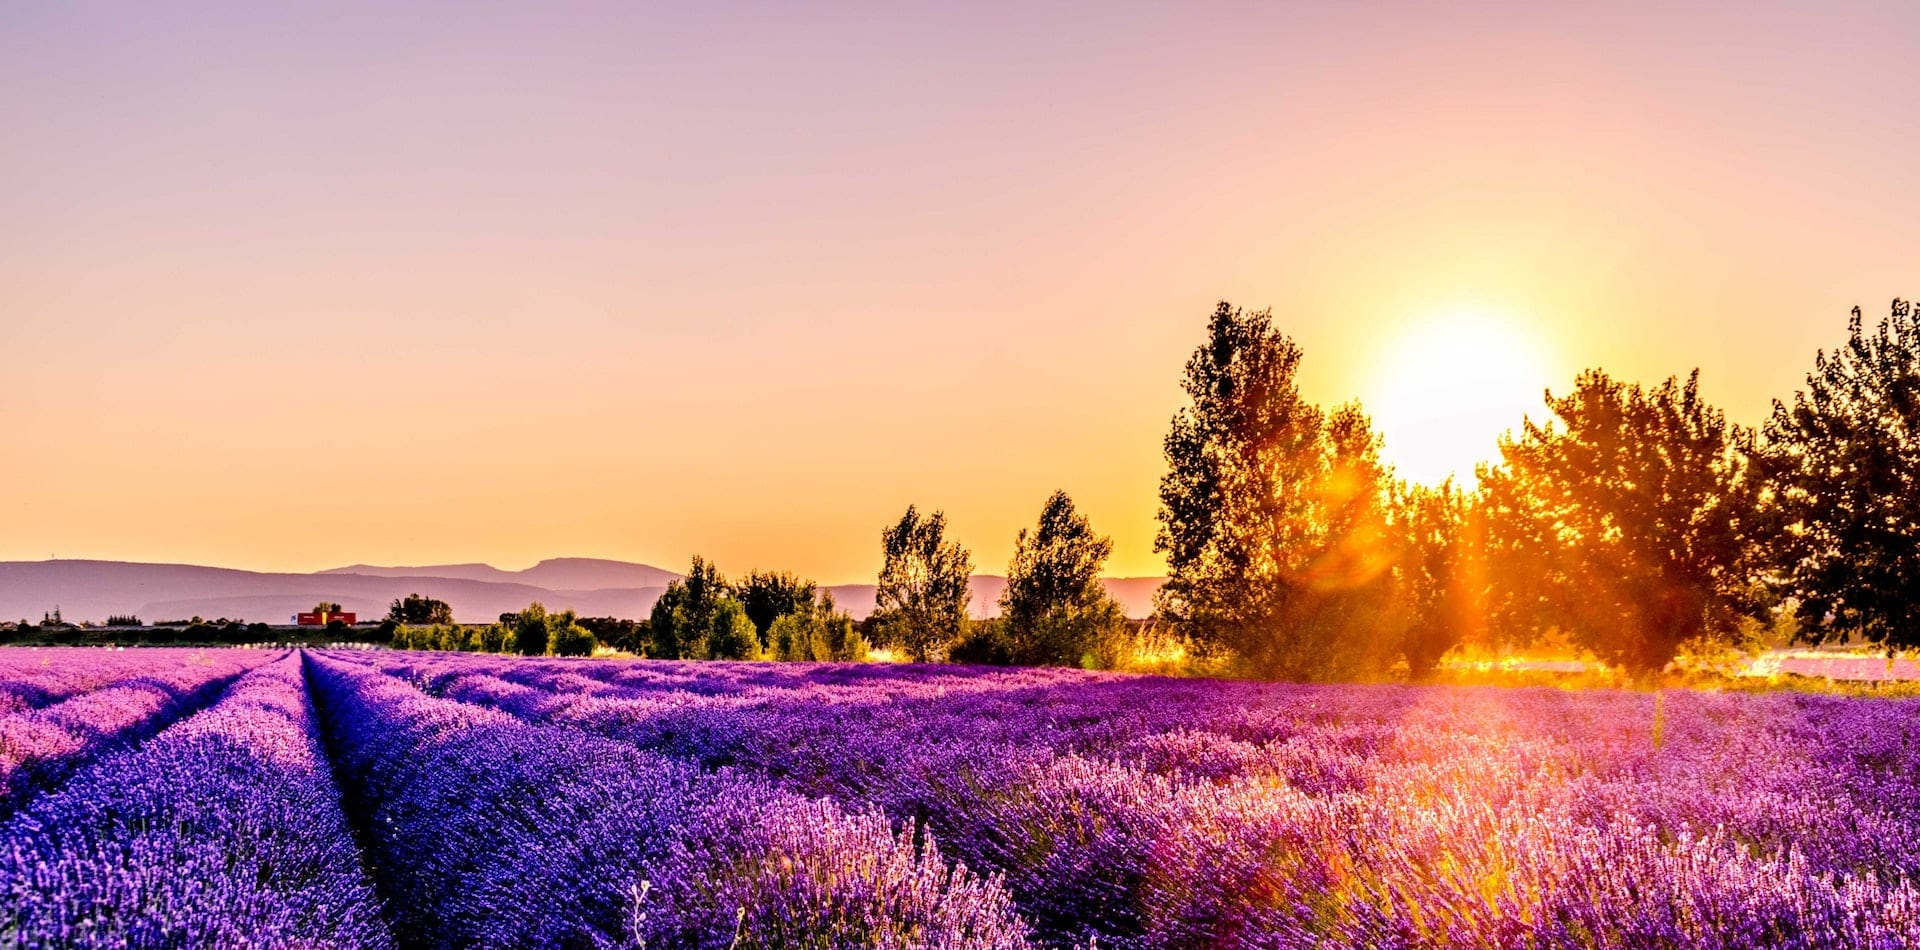 Lavender field at sunset in Drome, France